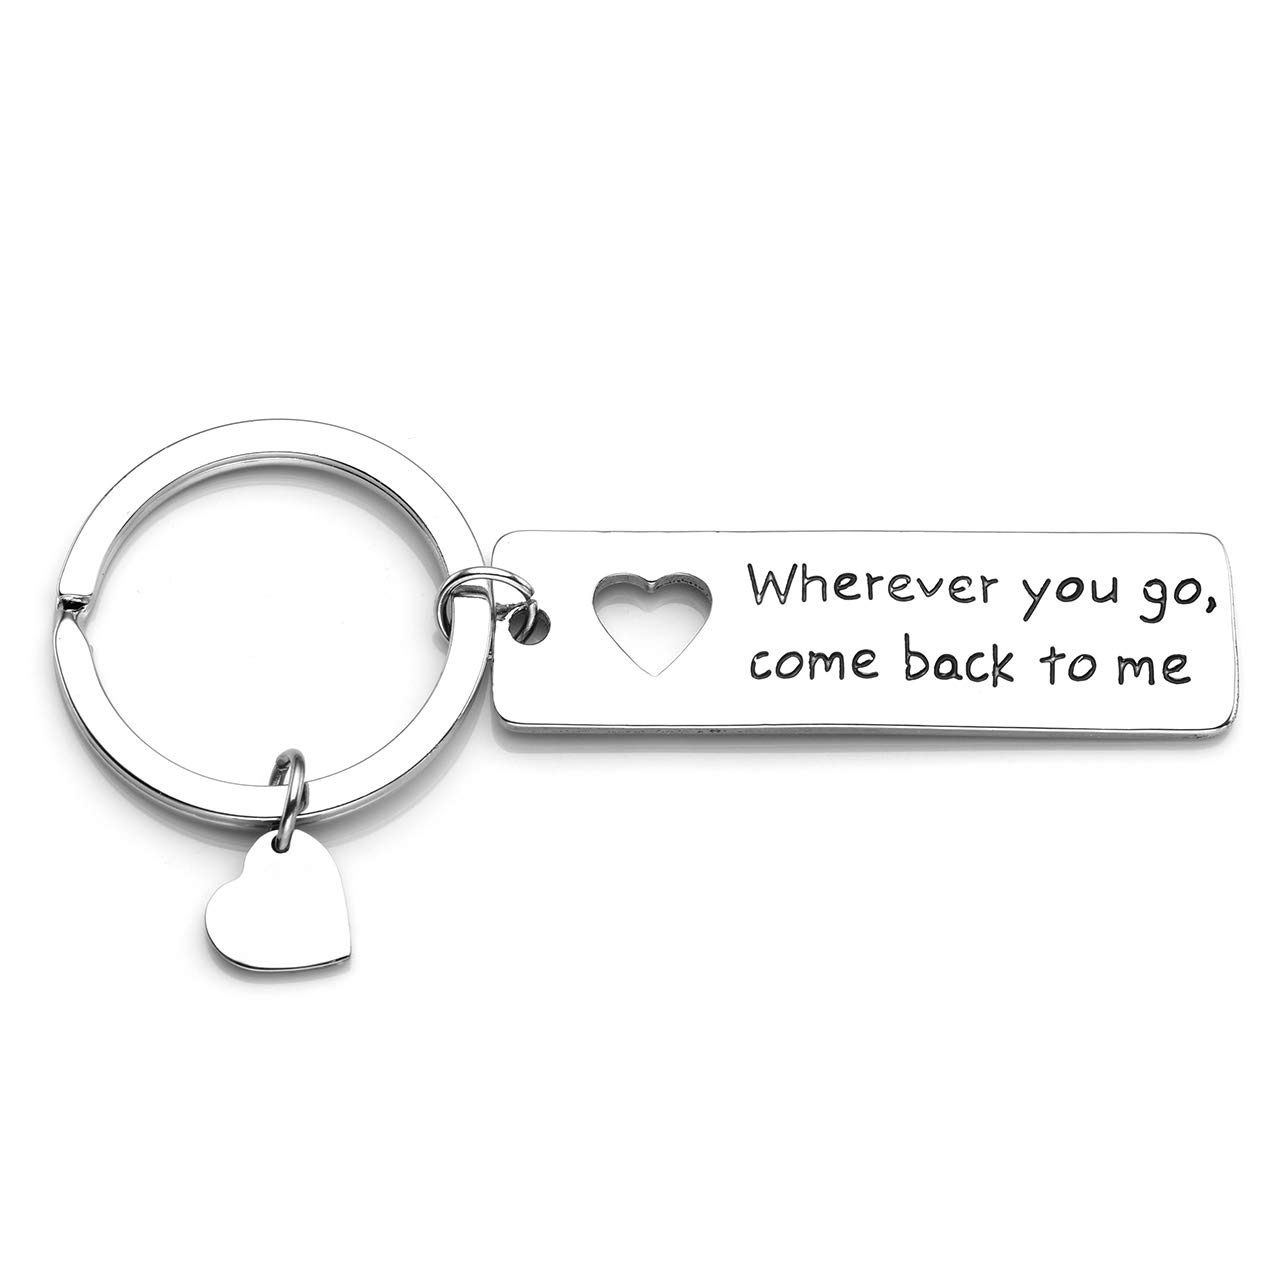 Custom made S.Steel Silver Heart Keyring Keychain PHOTO /& TEXT ENGRAVED